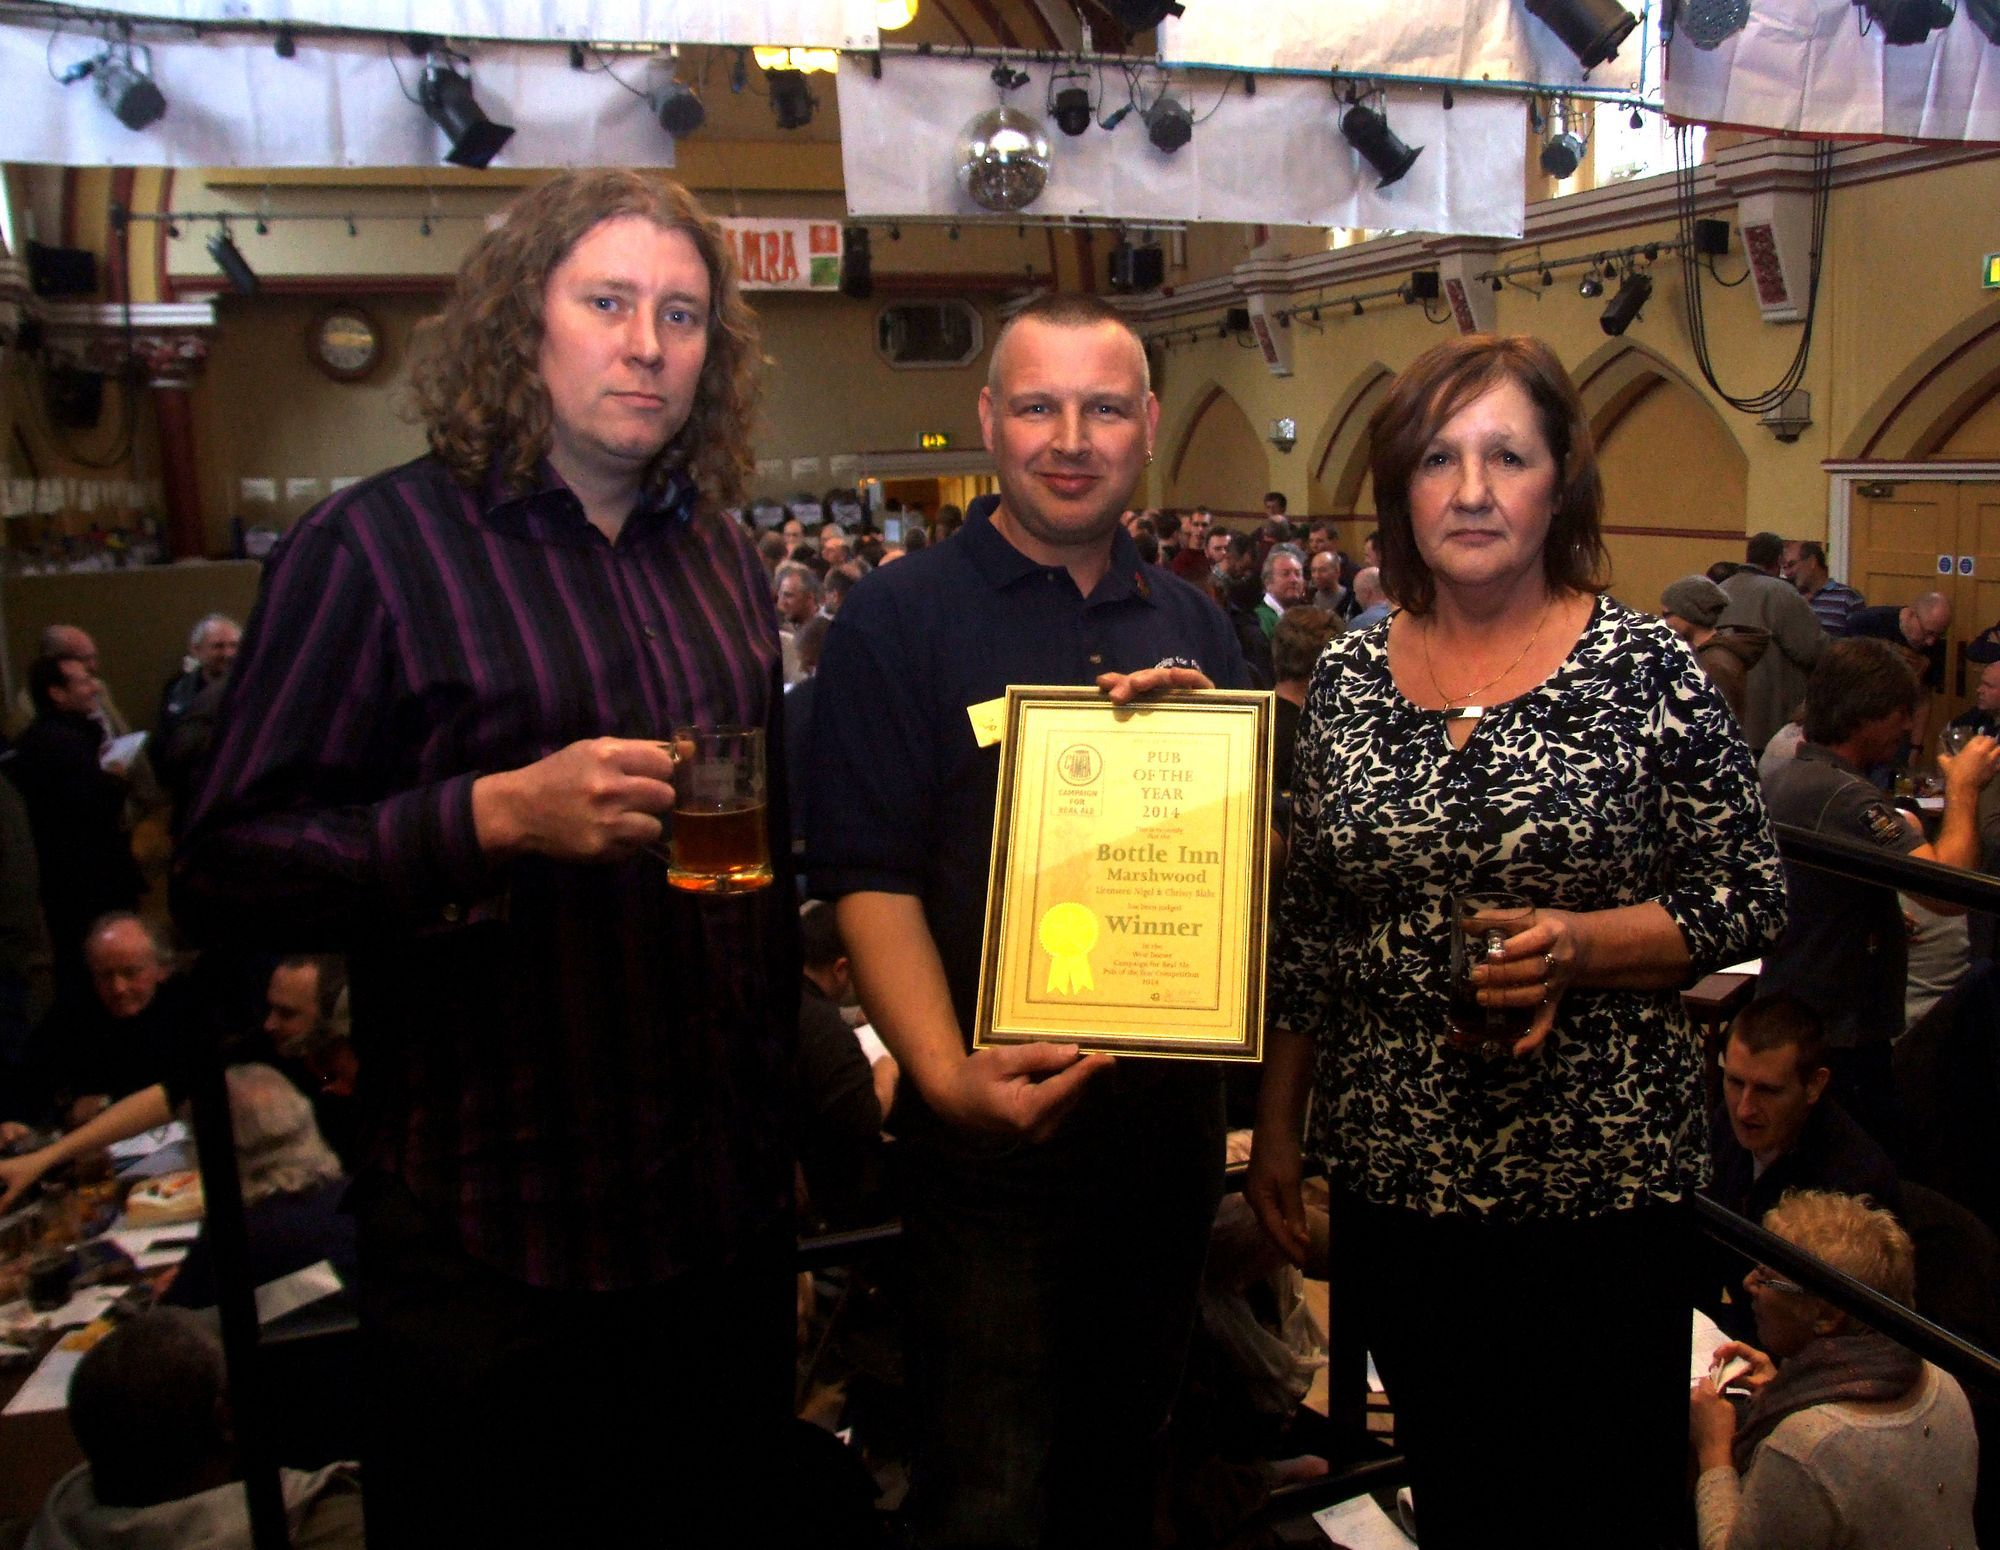 CAMRA's Rich Gabe, centre presents Nigle and Chrissy Blake of the Bottle Inn with top honours.